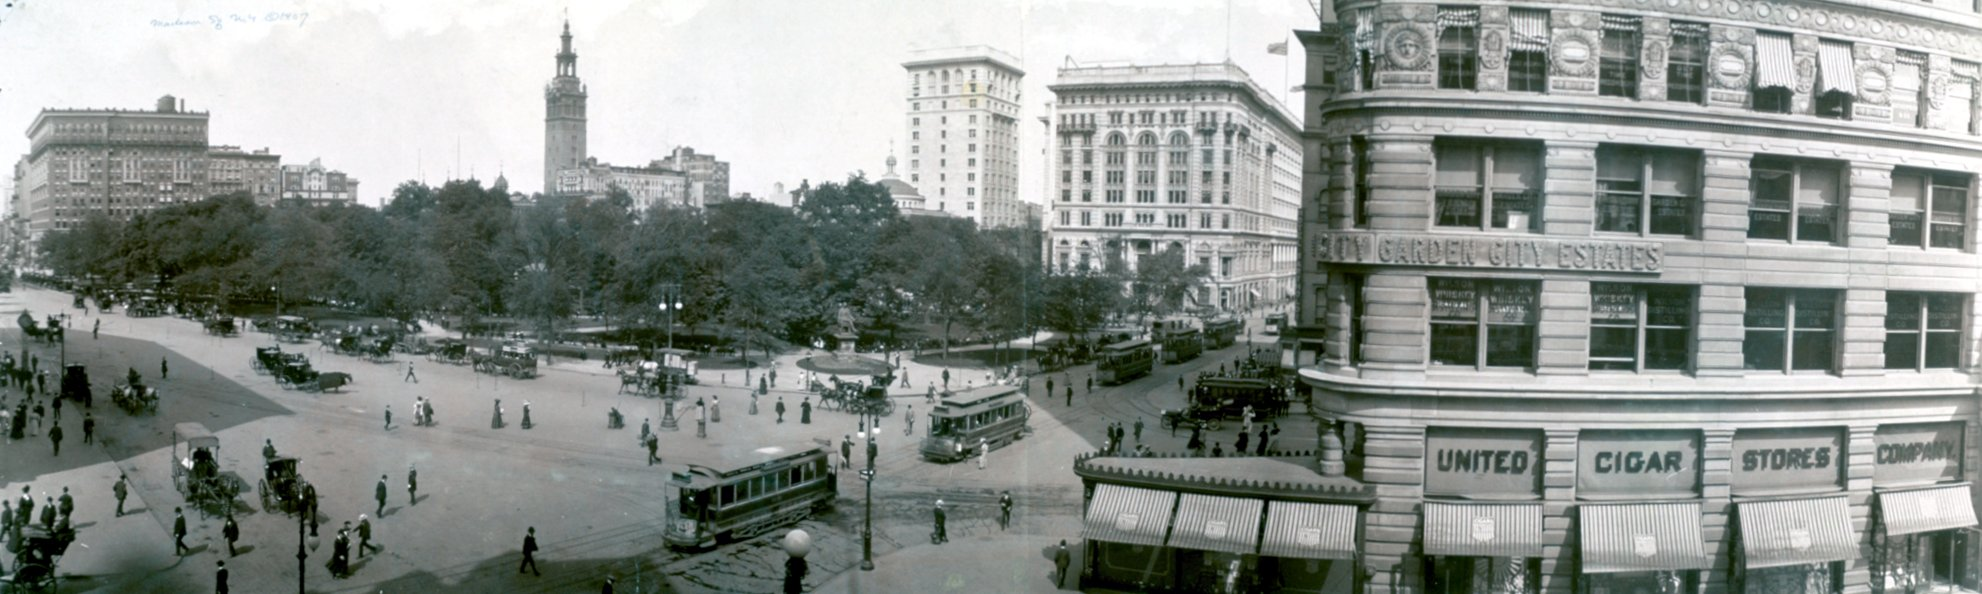 https://upload.wikimedia.org/wikipedia/commons/8/8f/Madison_square_new_york_1908.jpg